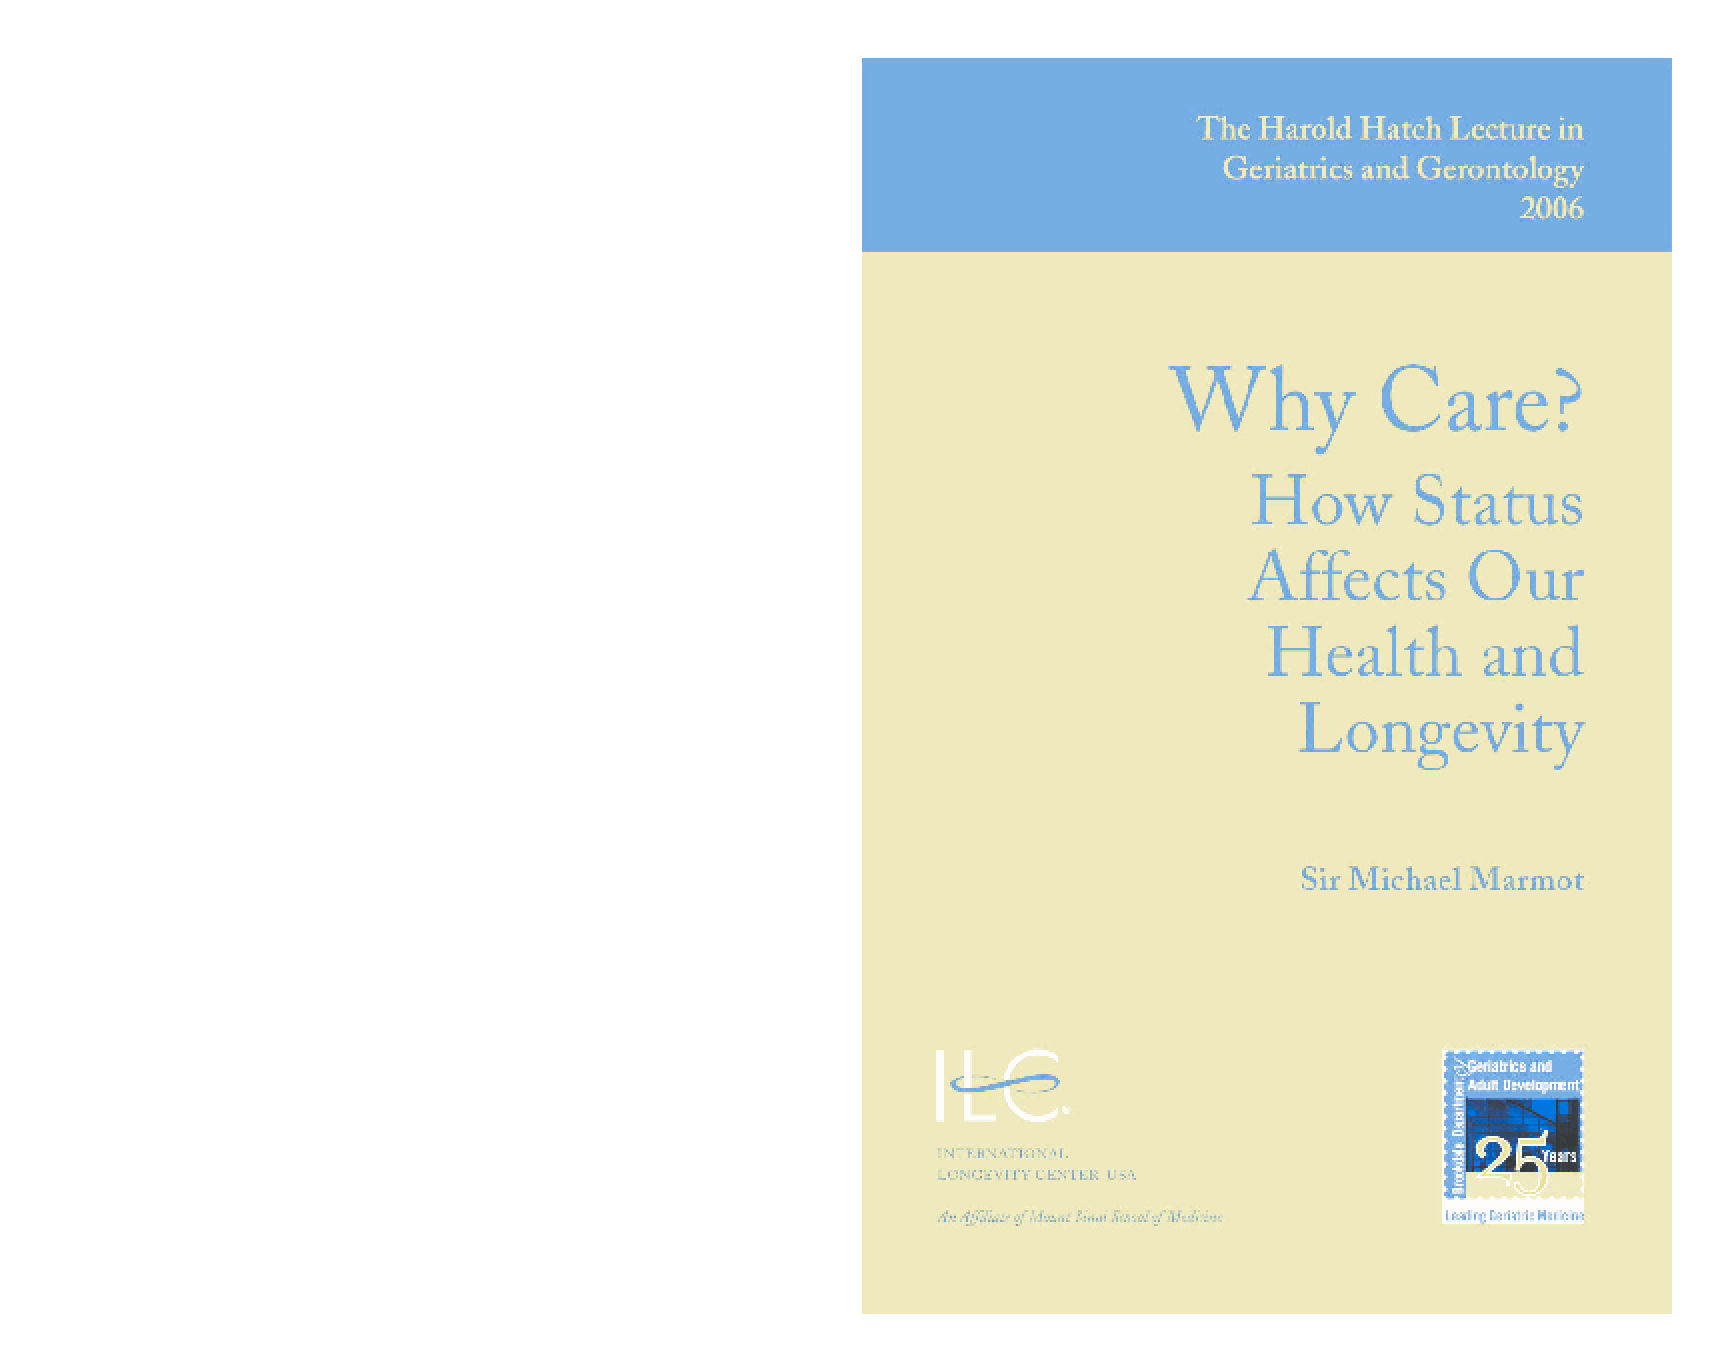 Why Care? How Status Affects Our Health and Longevity